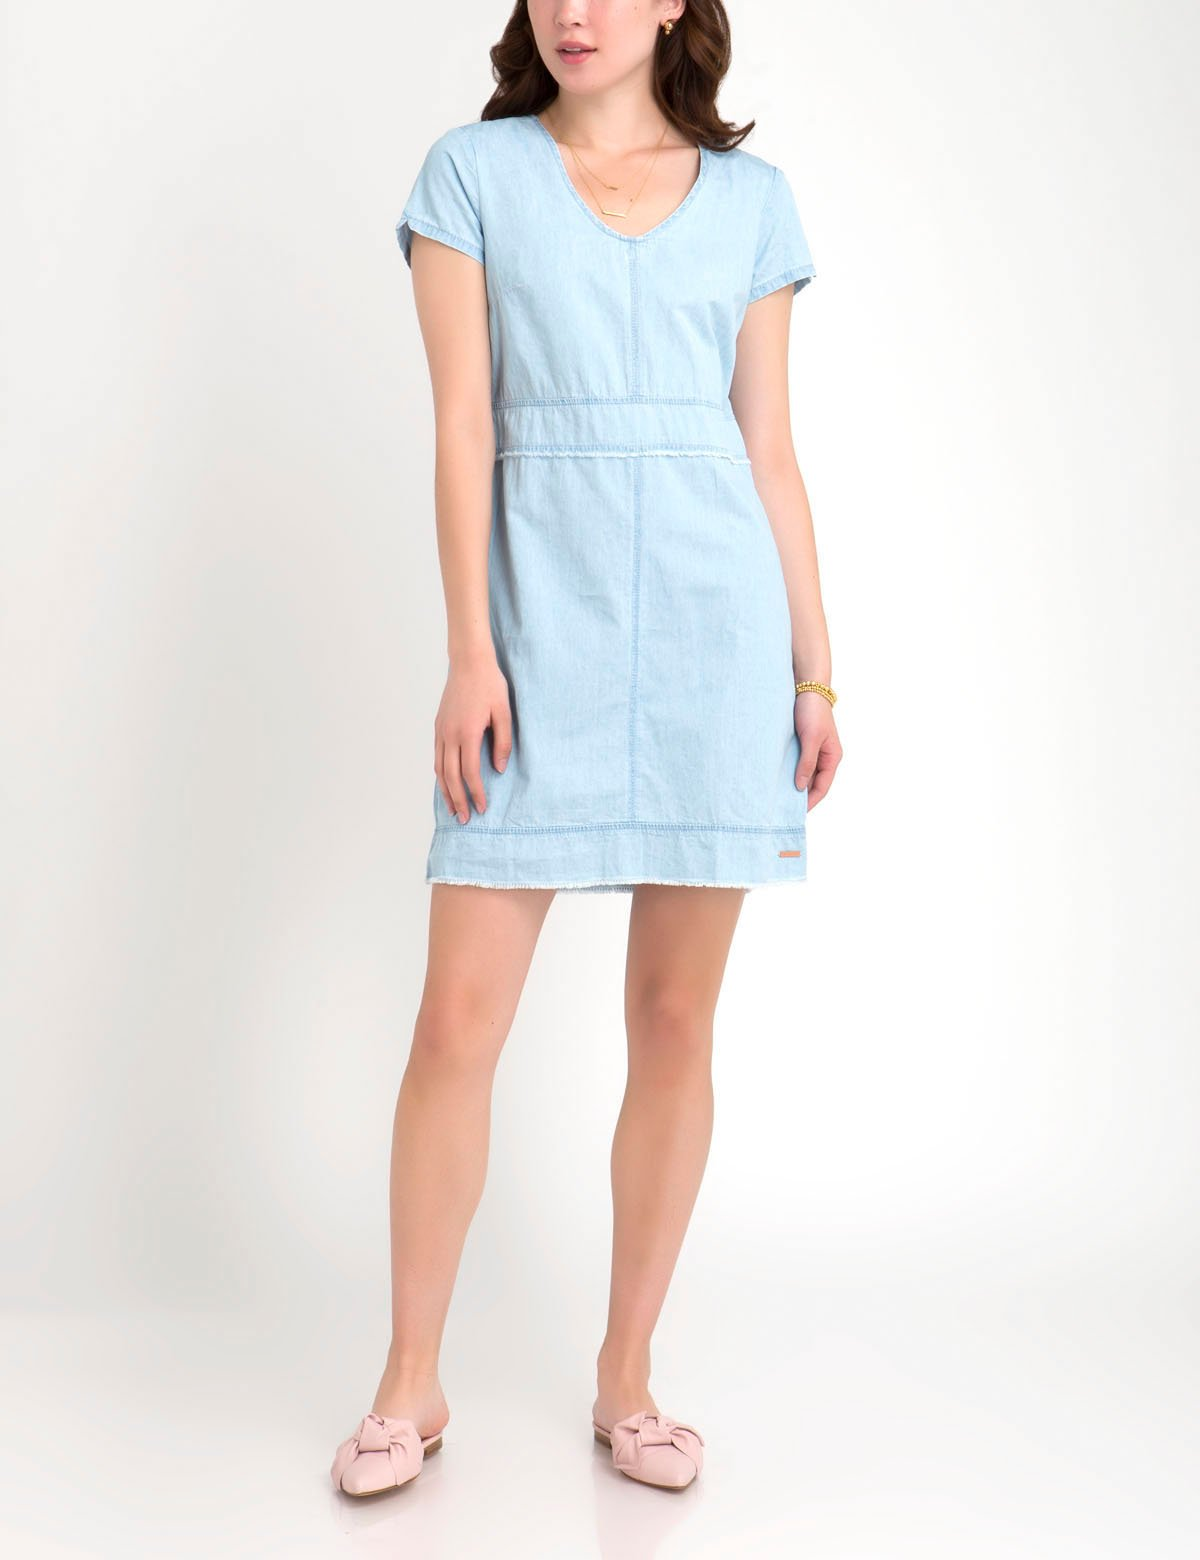 FRAYED DENIM DRESS - U.S. Polo Assn.